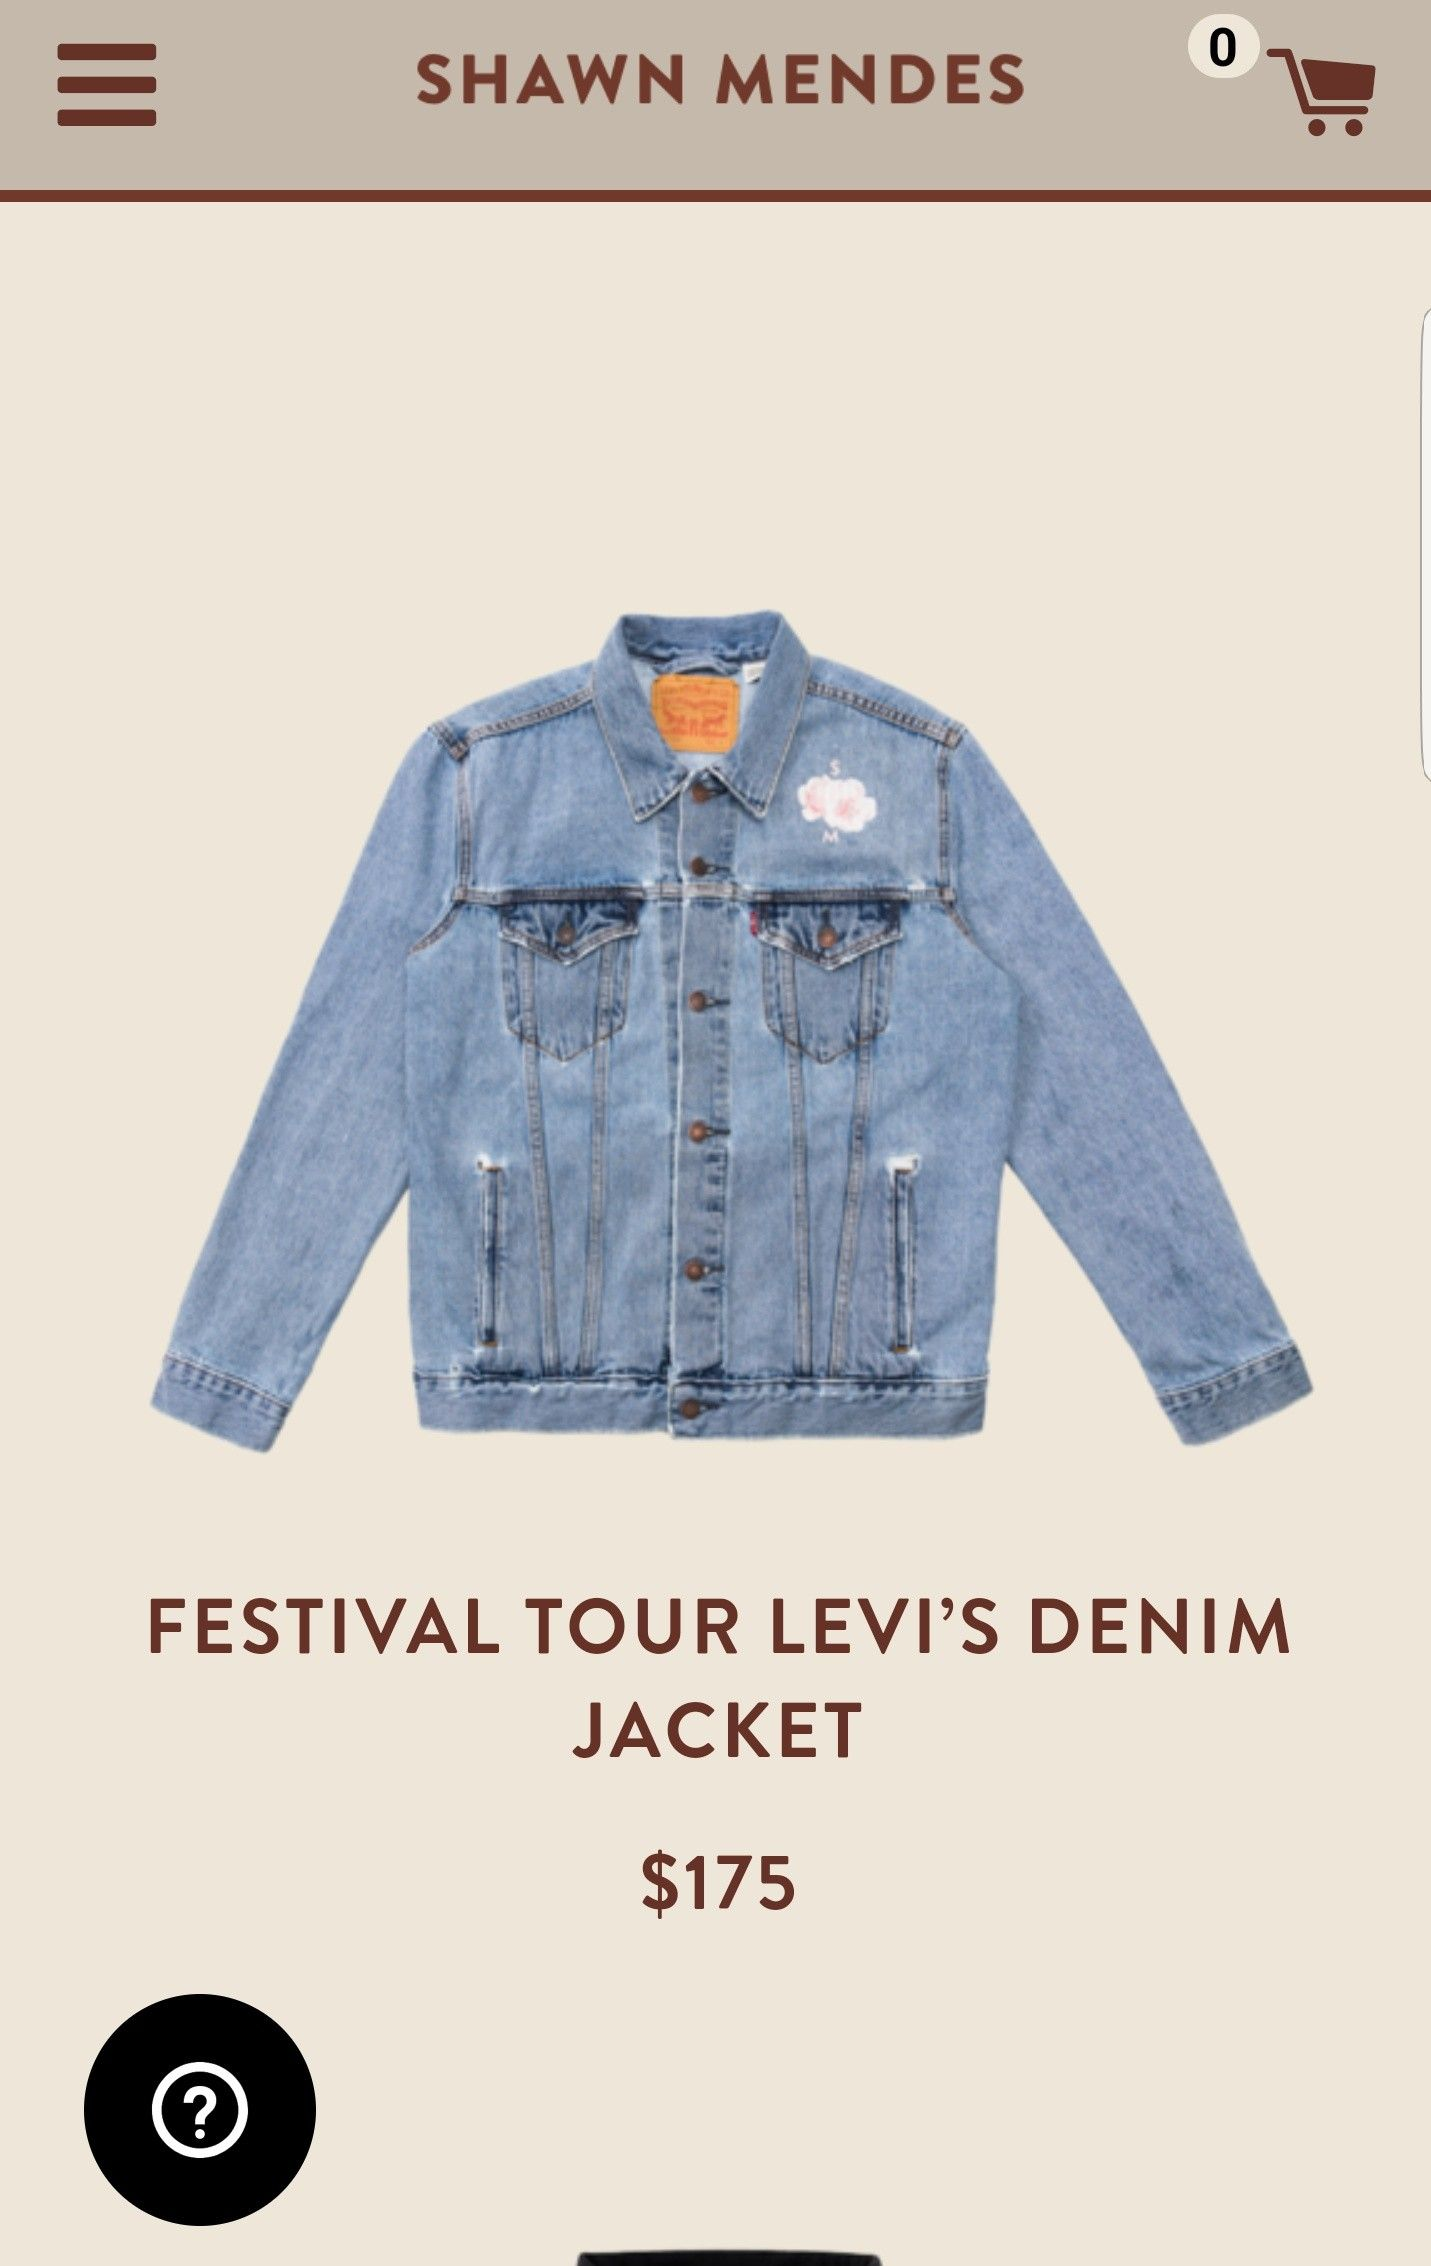 533aeb055 Shawn Mendes the tour Levi's Demin Jacket 175$... 😭😭😭❤ | The ...